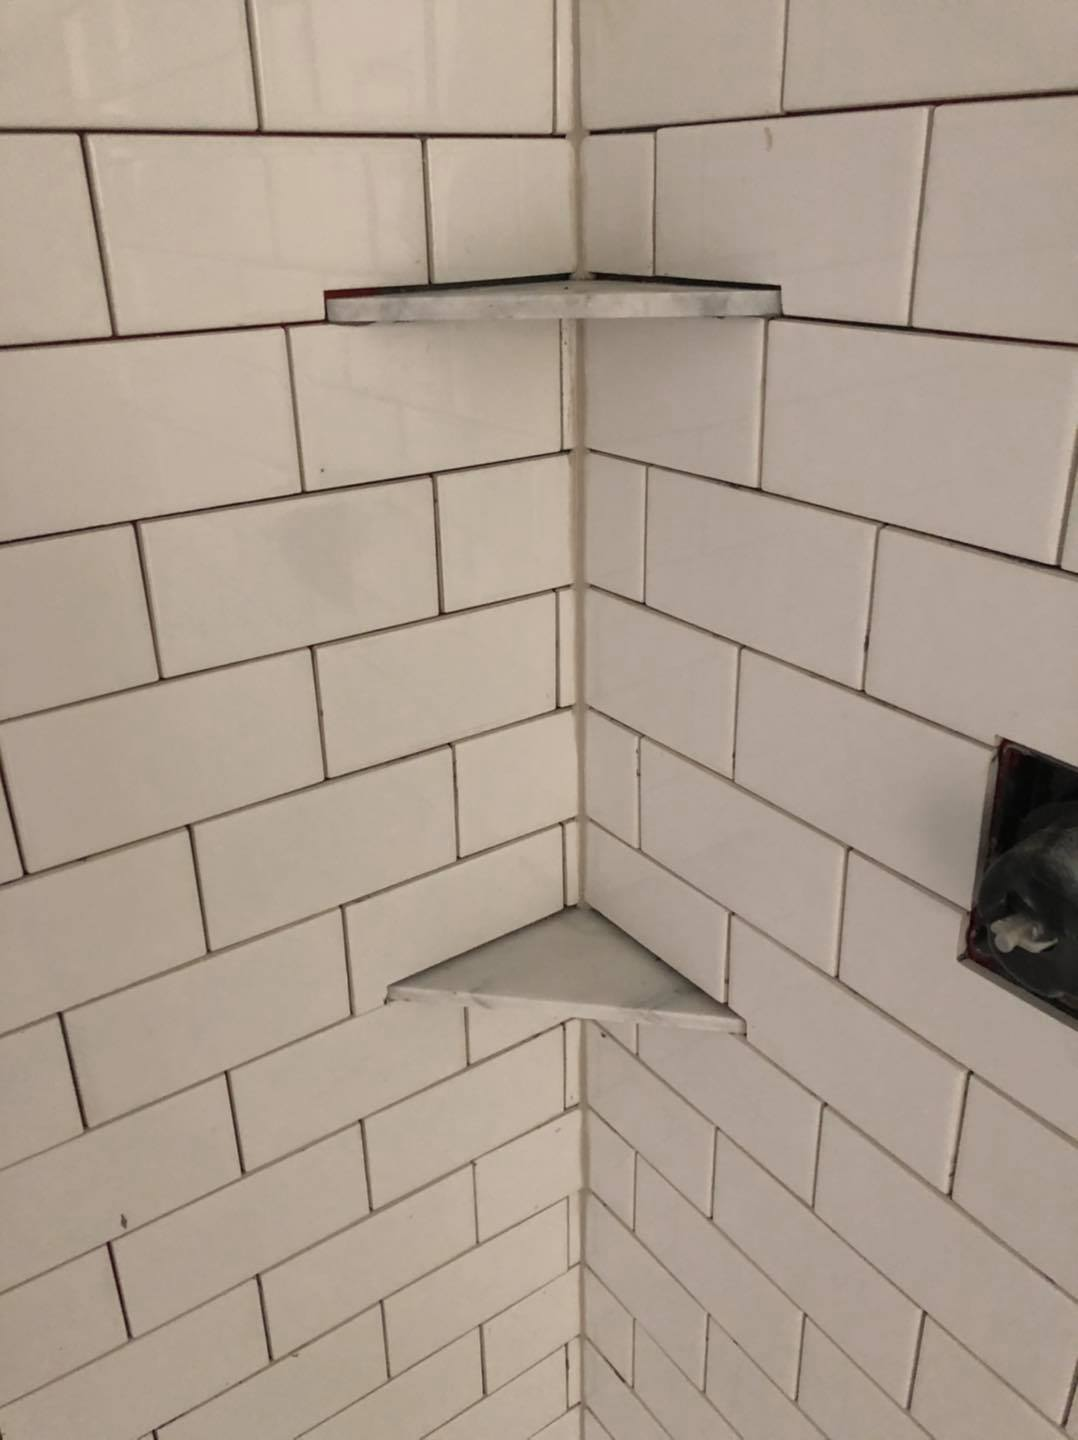 We always put a line of silicone in the corners instead of grout because grout a